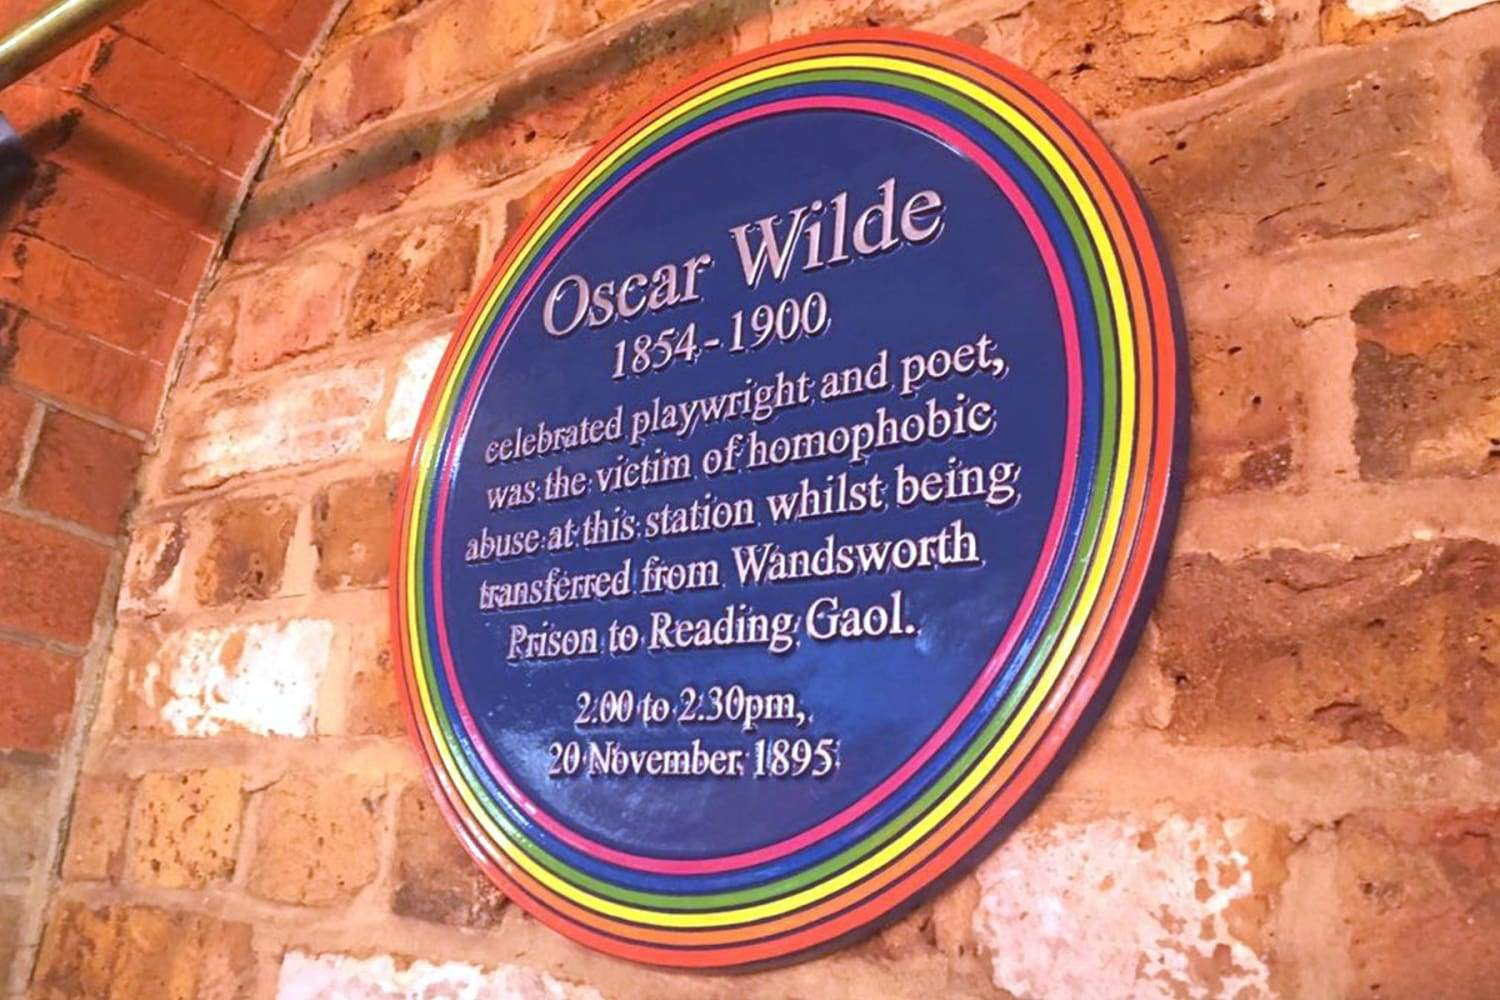 Oscar Wilde Rainbow Plaque at Wandsworth Station